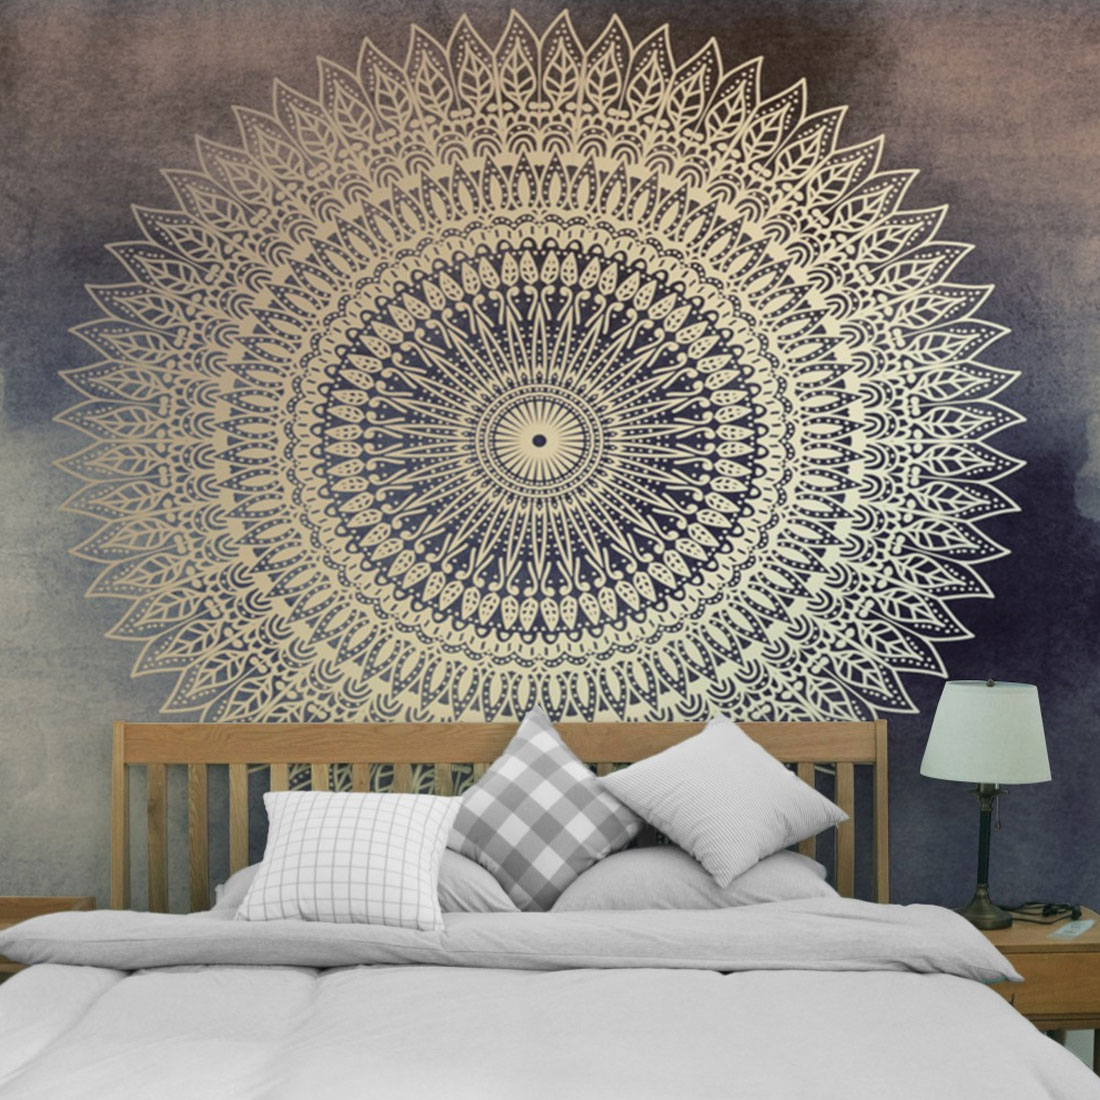 Indian Wall Home Decor Hippie Tapestries Boho Psychedelic Mandala Tapestry Wall Hanging Sheet Camping Tent Travel Sleeping Pad